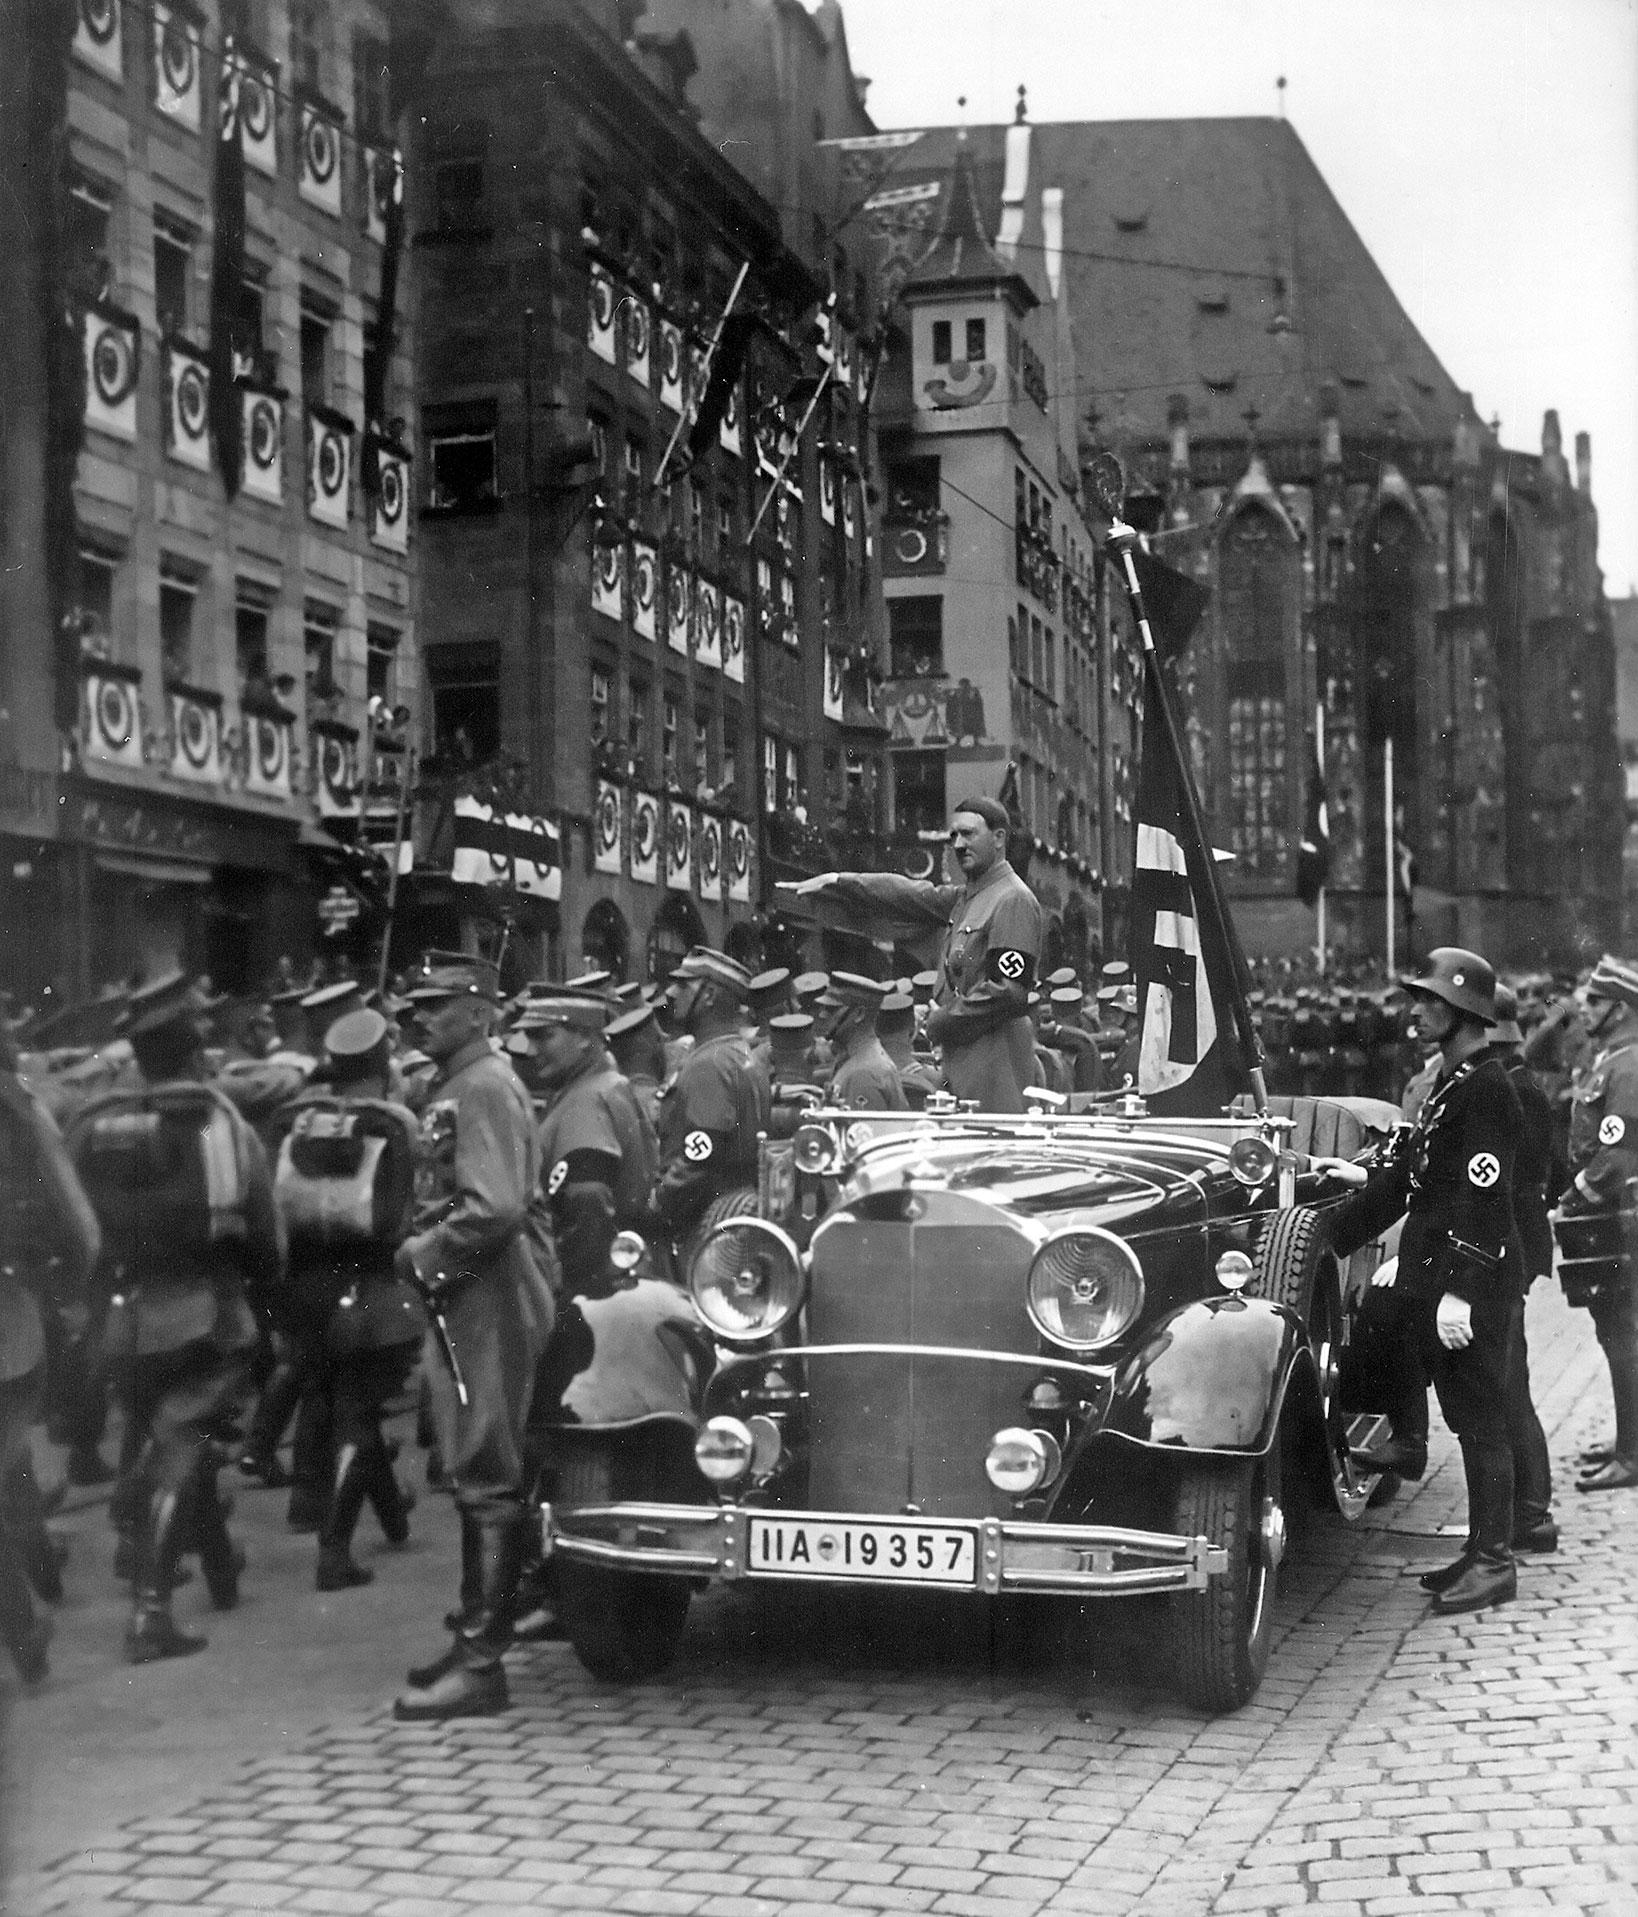 Adolf Hitler viewing a parade of SA troops in Nuremberg, Germany, in September of 1935.  Following Hitler's defeat less than ten years after this photograph was taken, Nuremberg would be the setting for war crimes trials related to the brutal killings perpetrated by members of the Nazi party and their ilk.